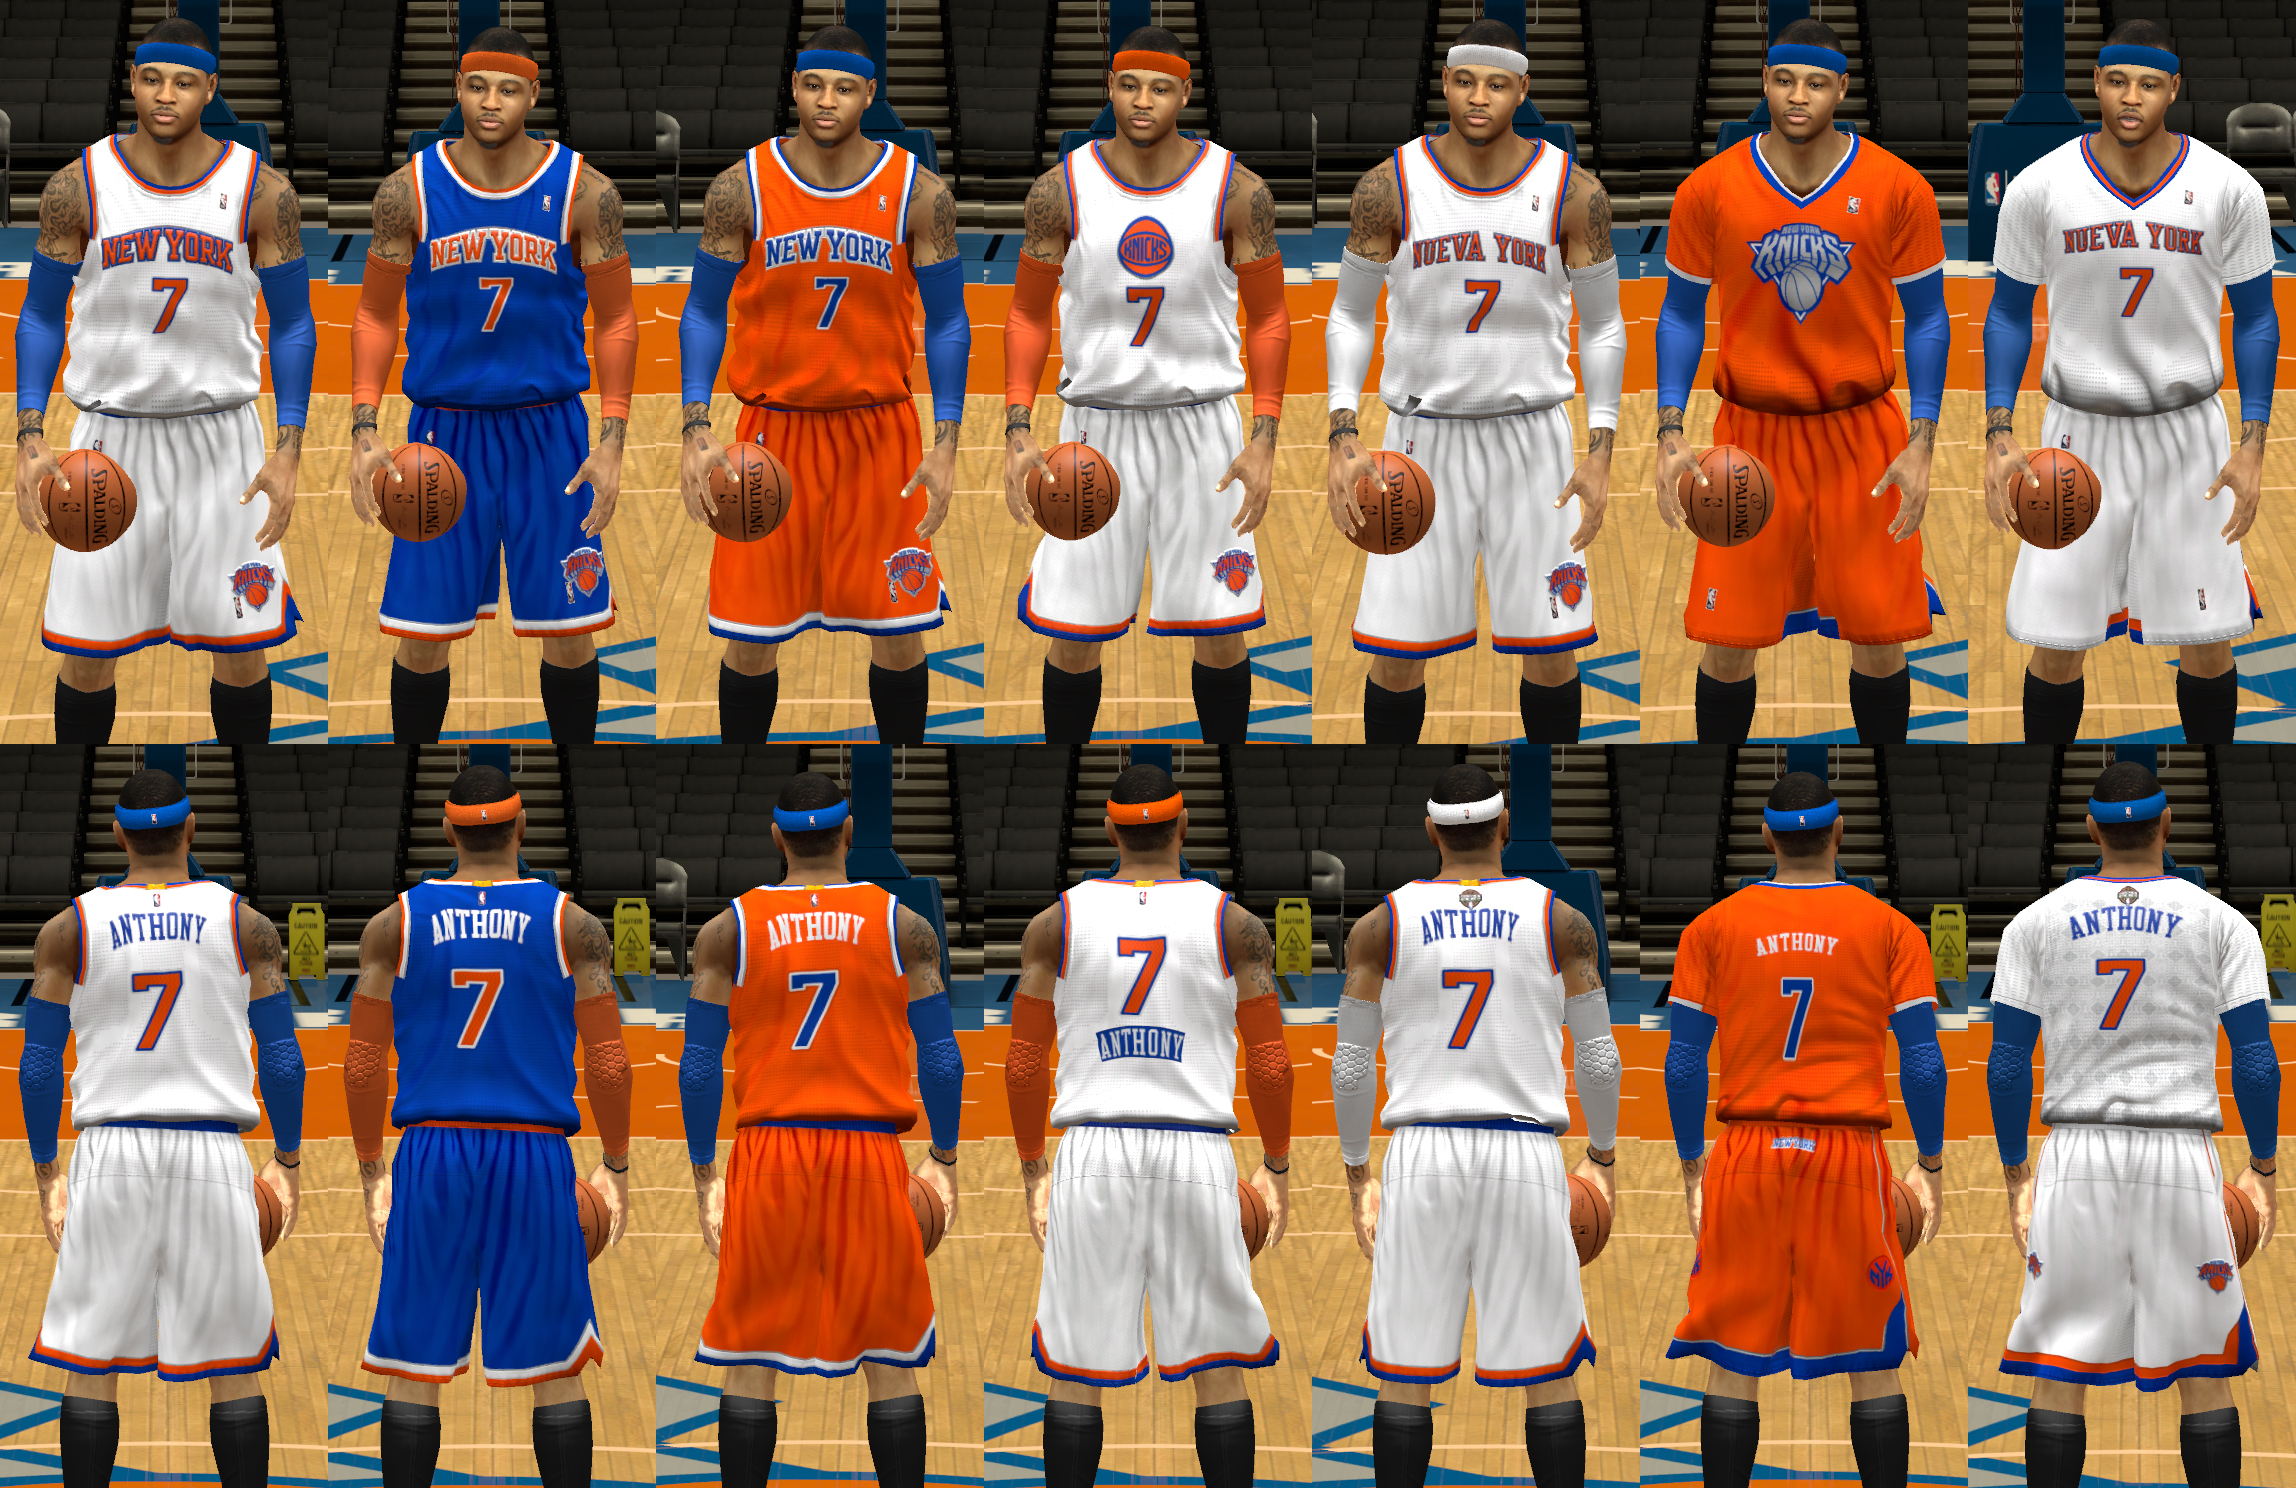 78fb377d947 NLSC Forum • Downloads - 2015 New York Knicks Uniforms